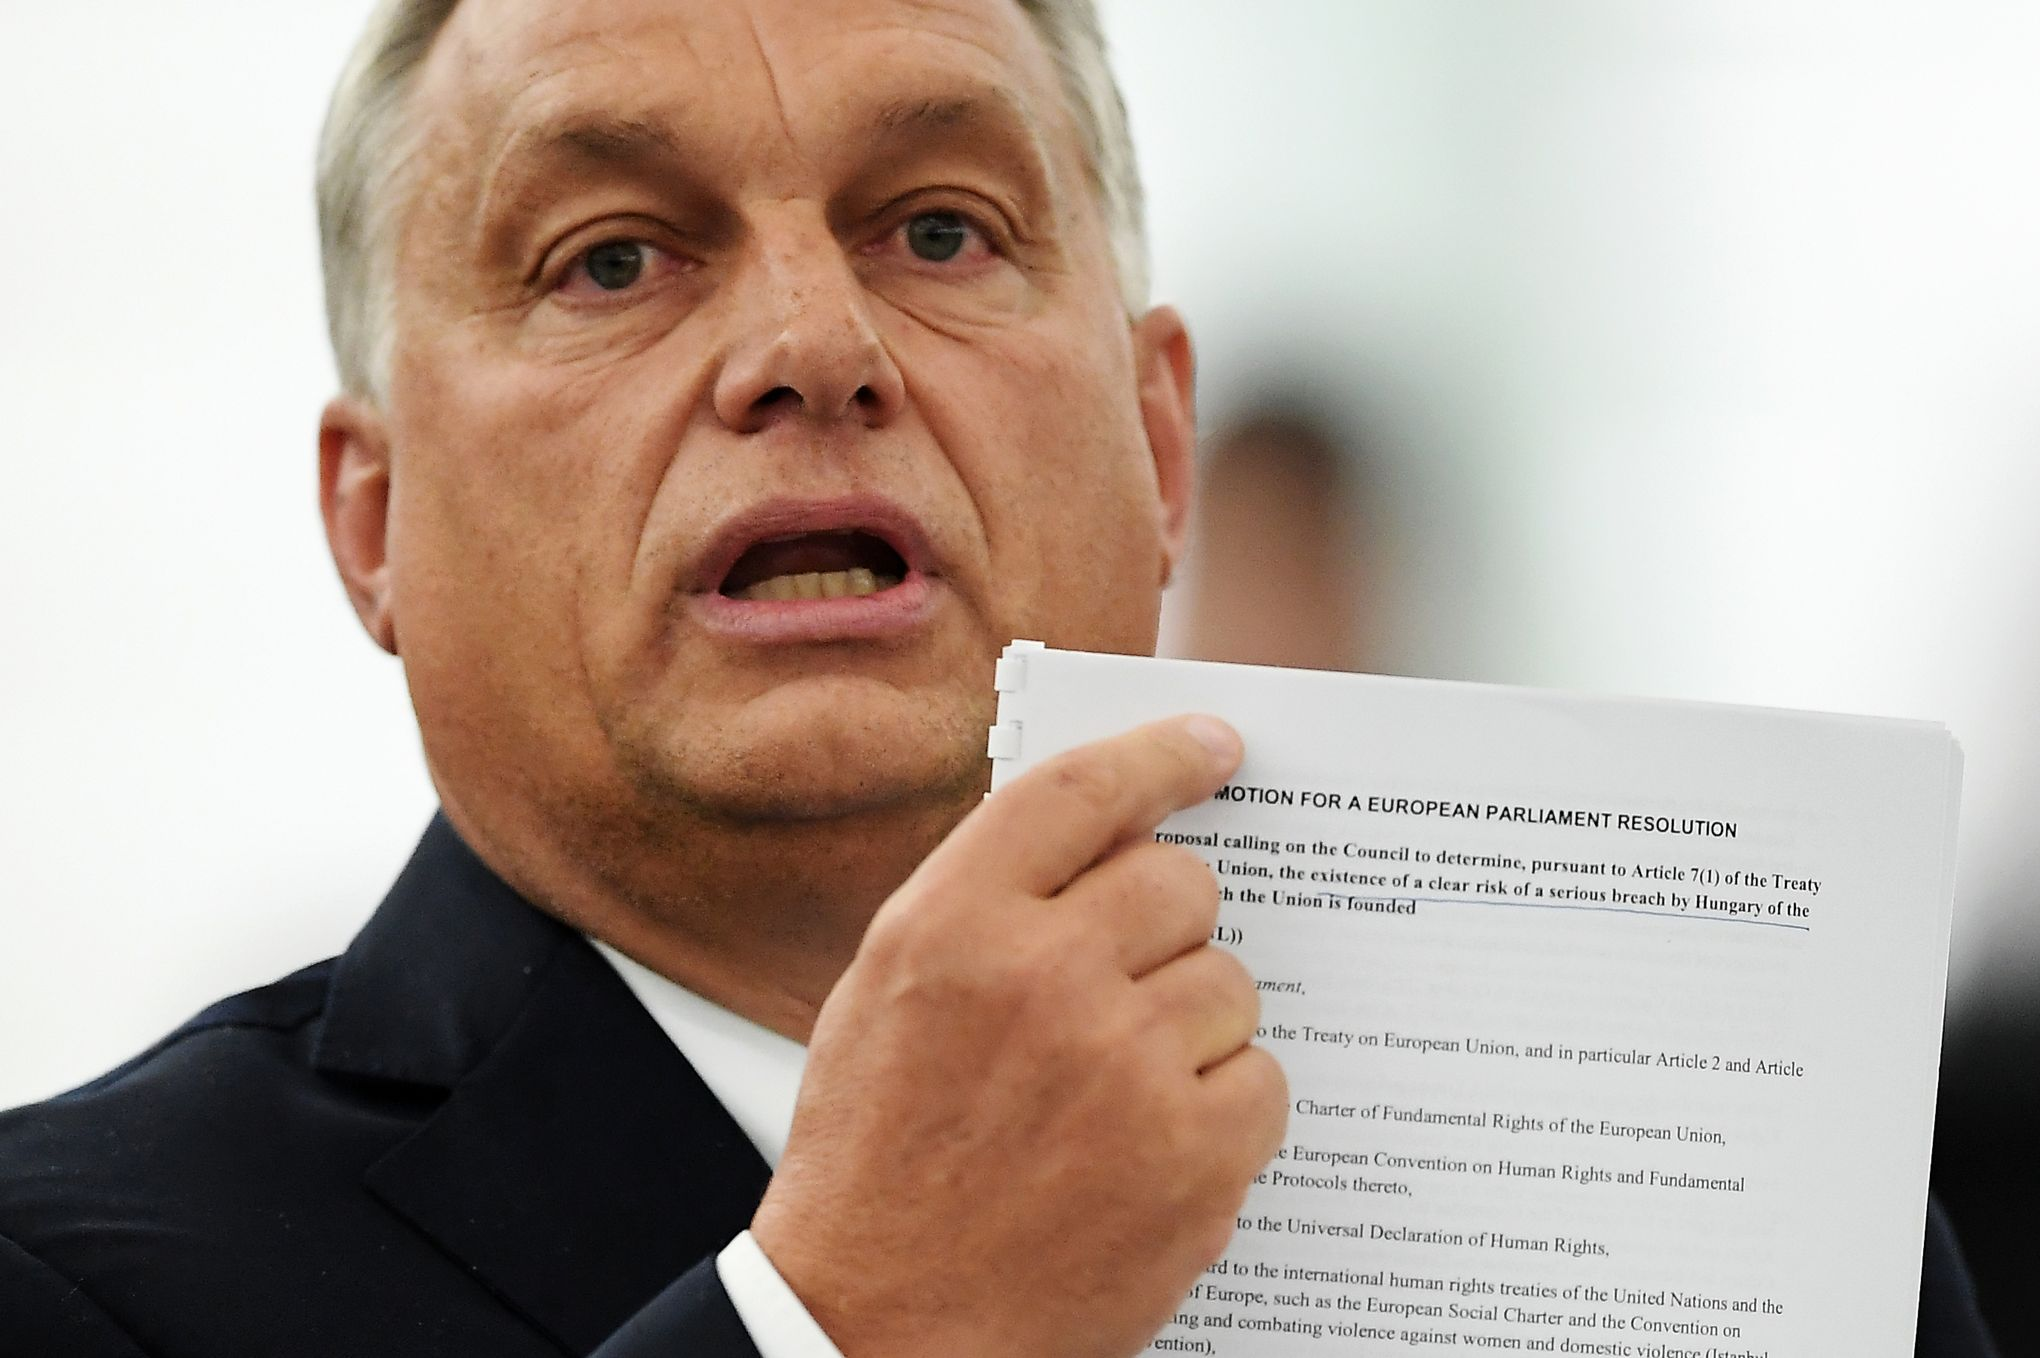 Viktor Orban montrant un document.